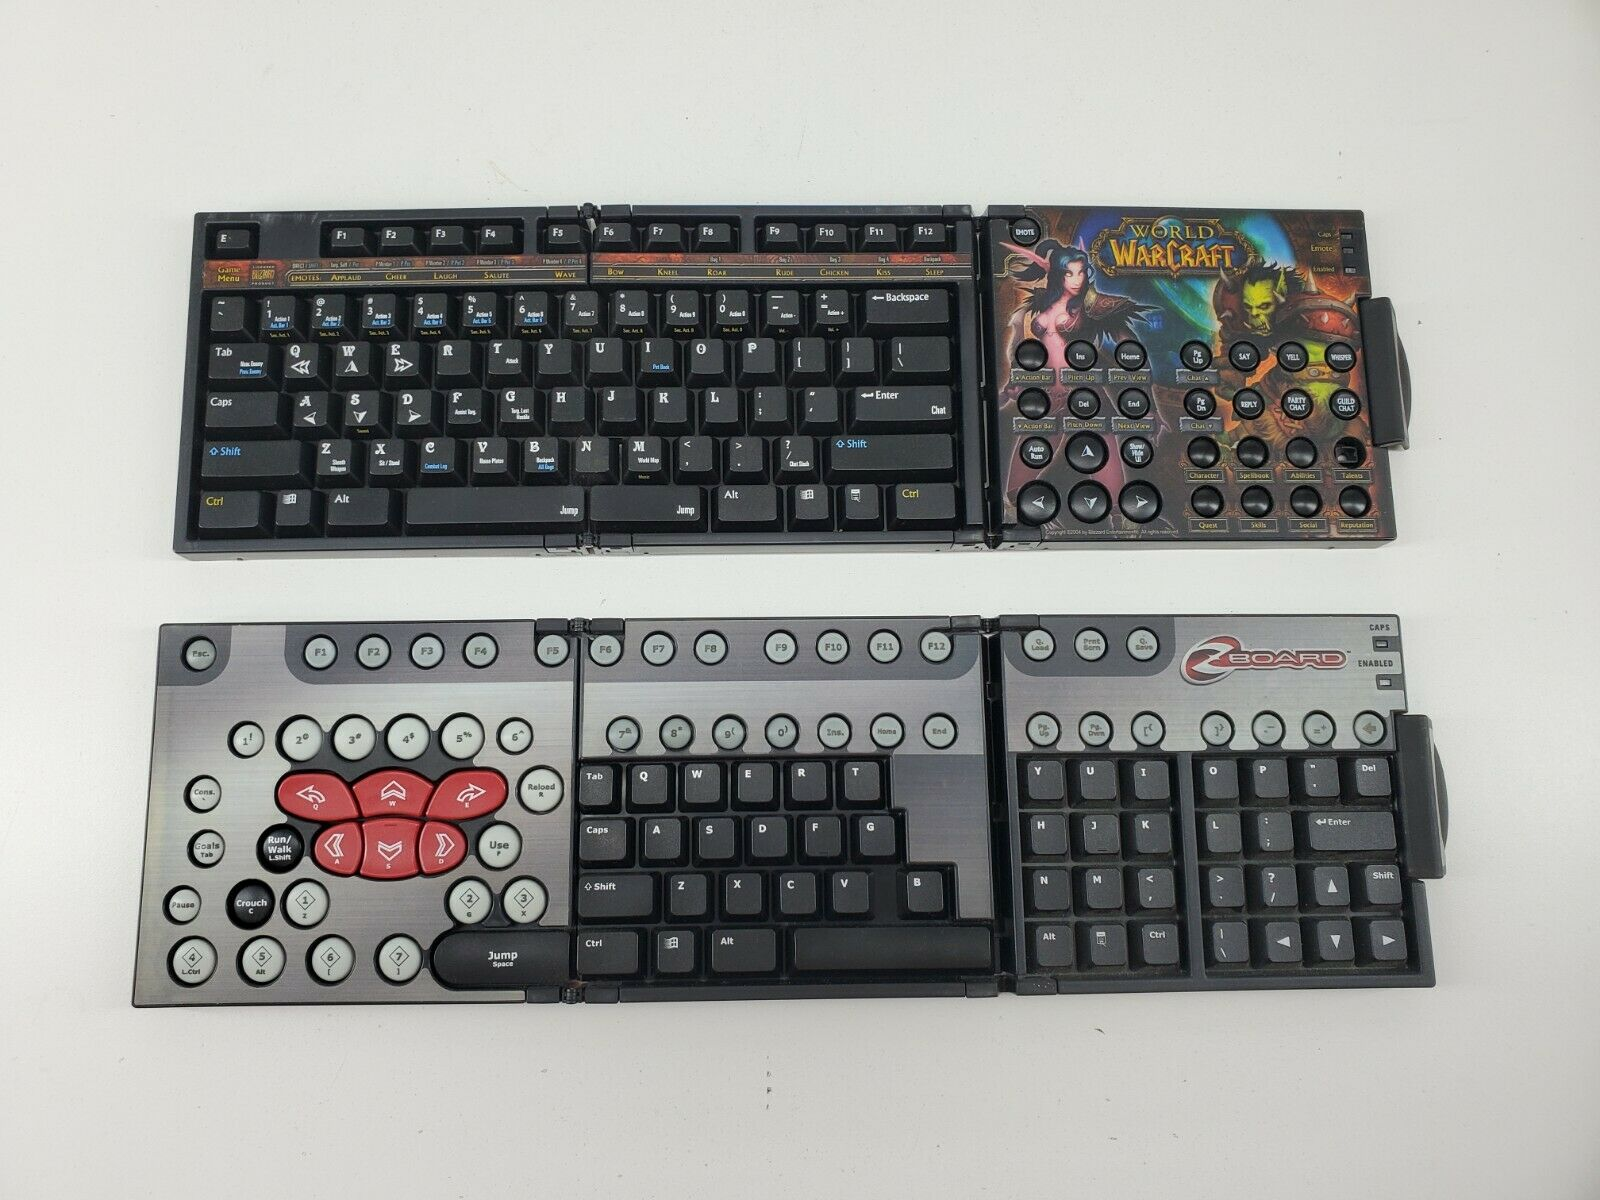 Lot of 2 ZBOARD WORLD OF WARCRAFT OVERLAY KEYBOARD WOW and Generic ZBoard